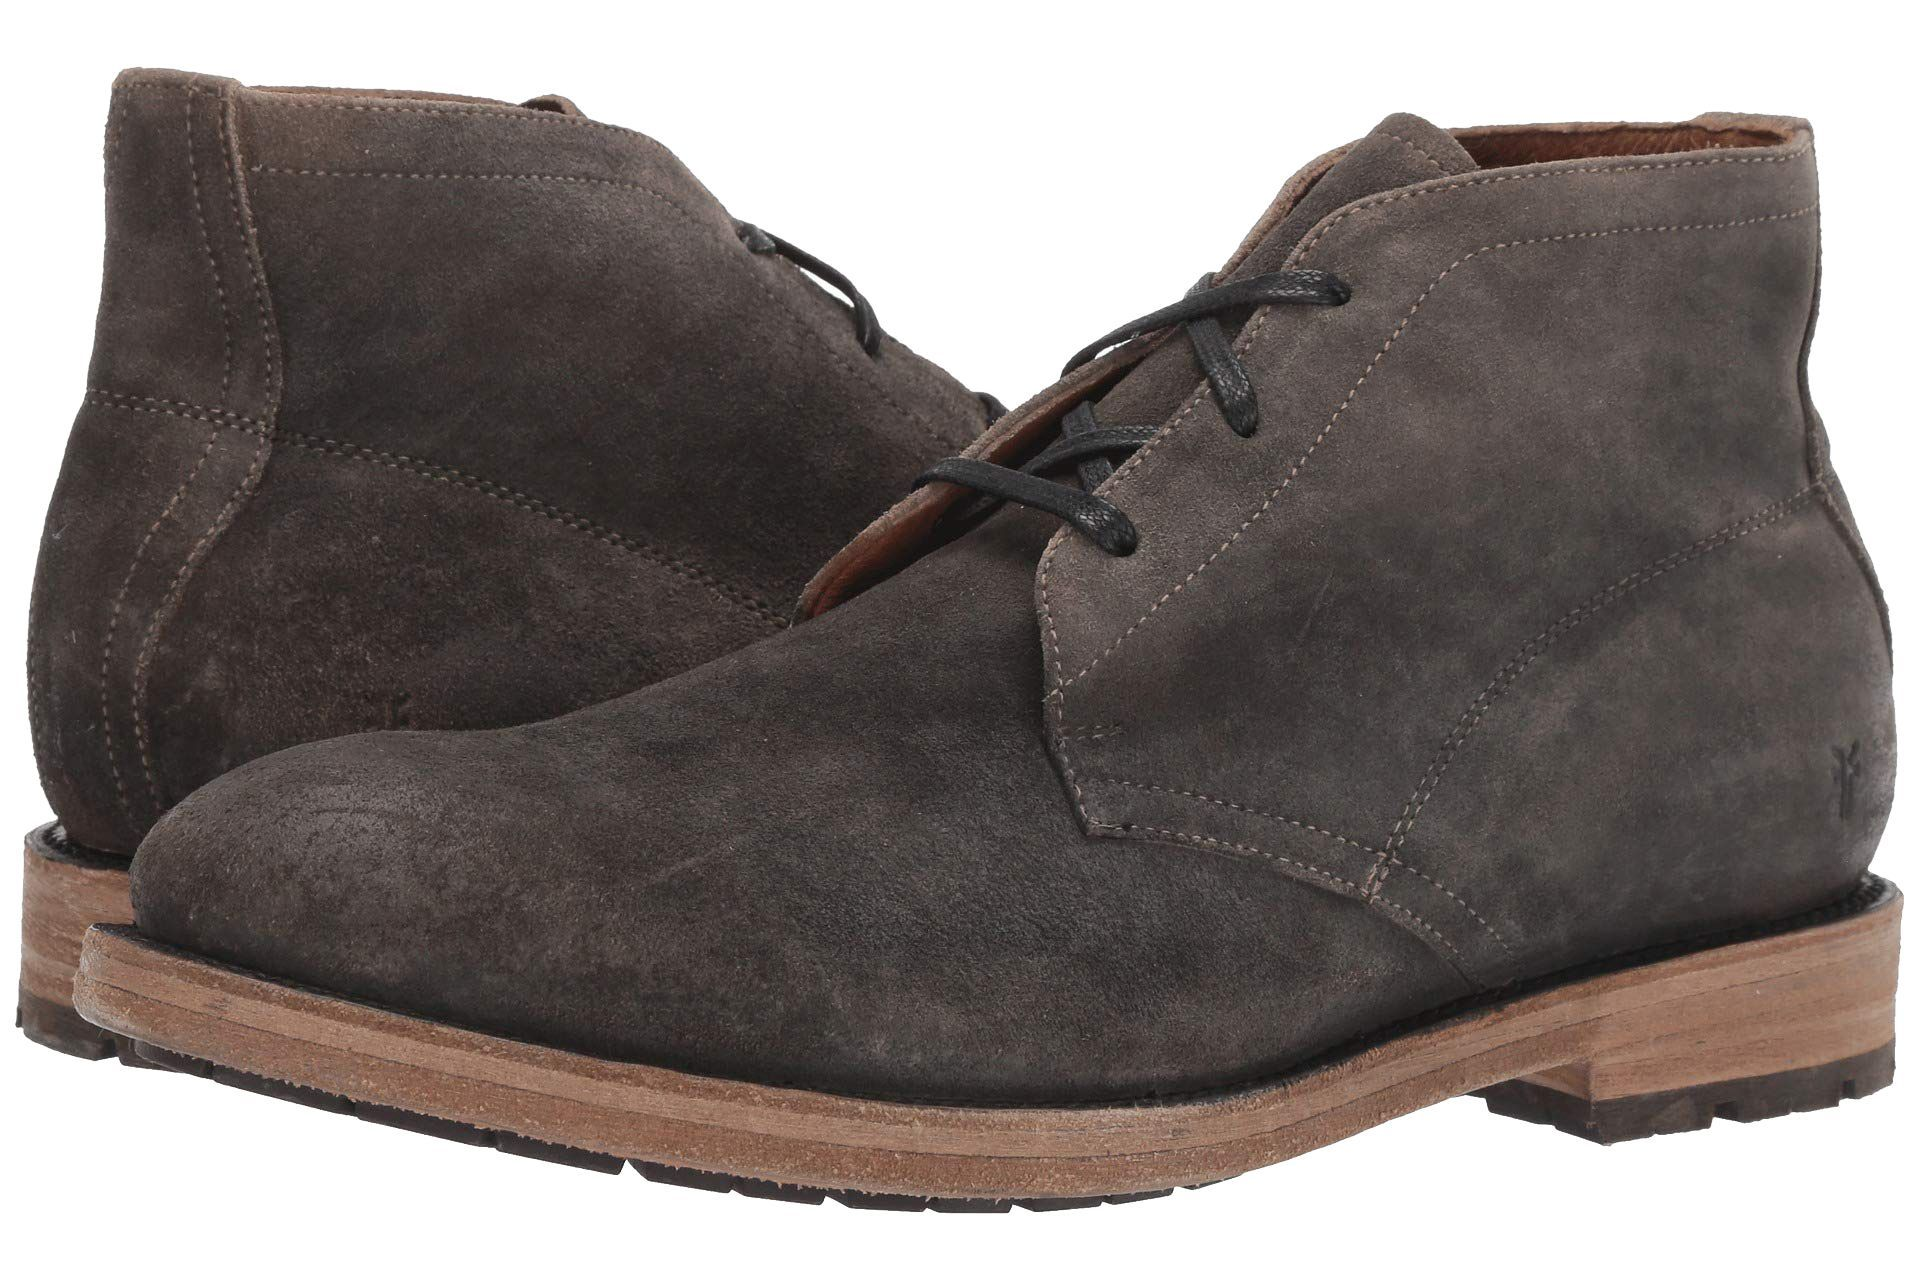 Frye Bowery Chukka zappos.com $328.00 SHOP A high-quality Frye sole changes the entire look of the classic chukka.